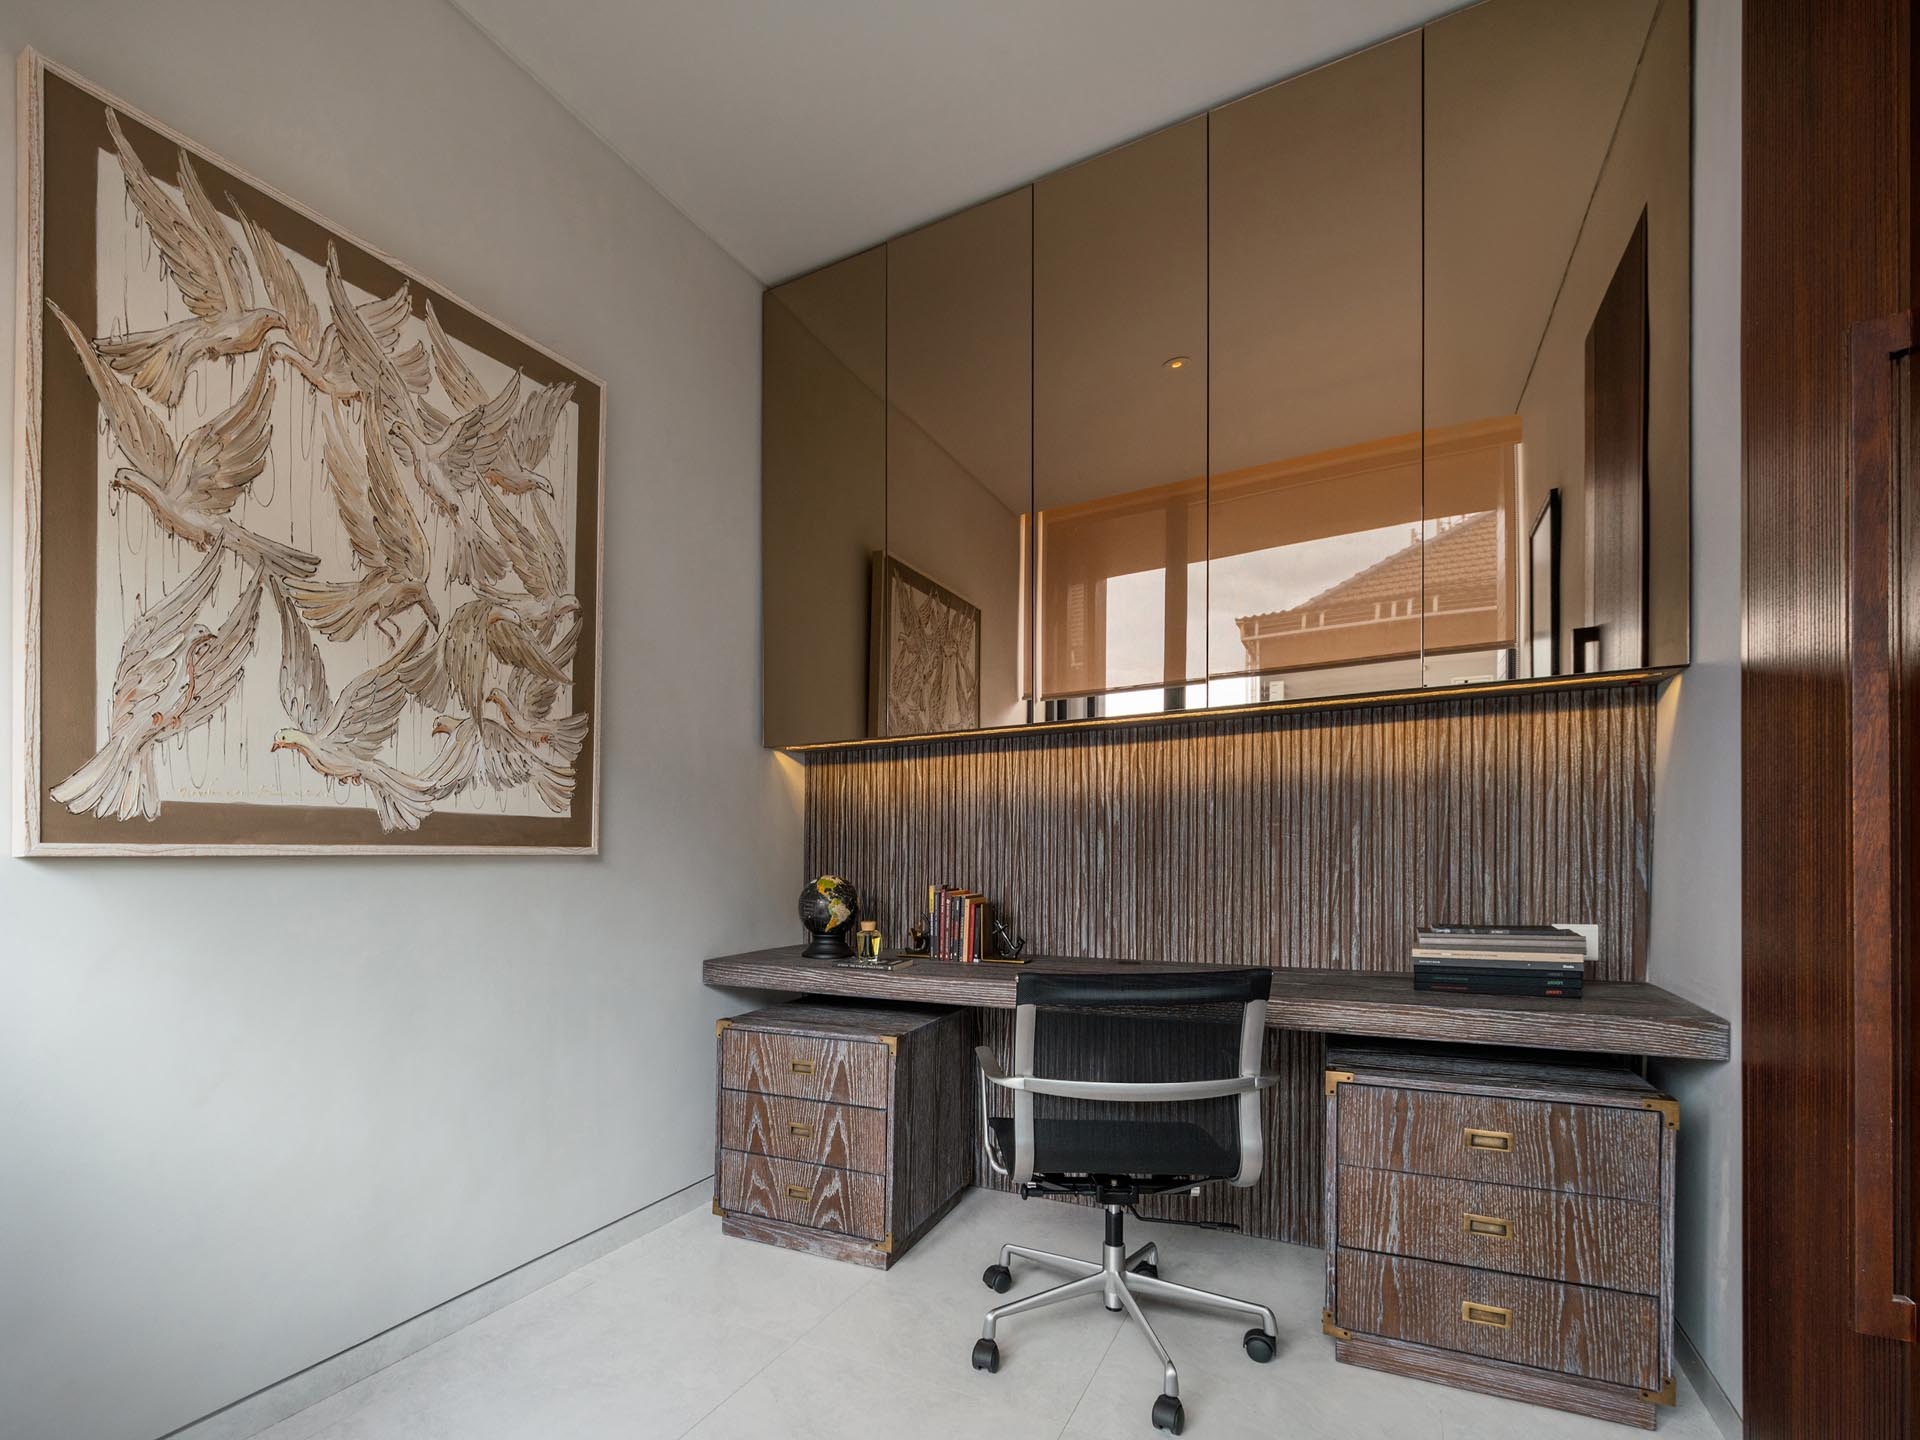 A home office has mirrored cabinets positioned above the desk.